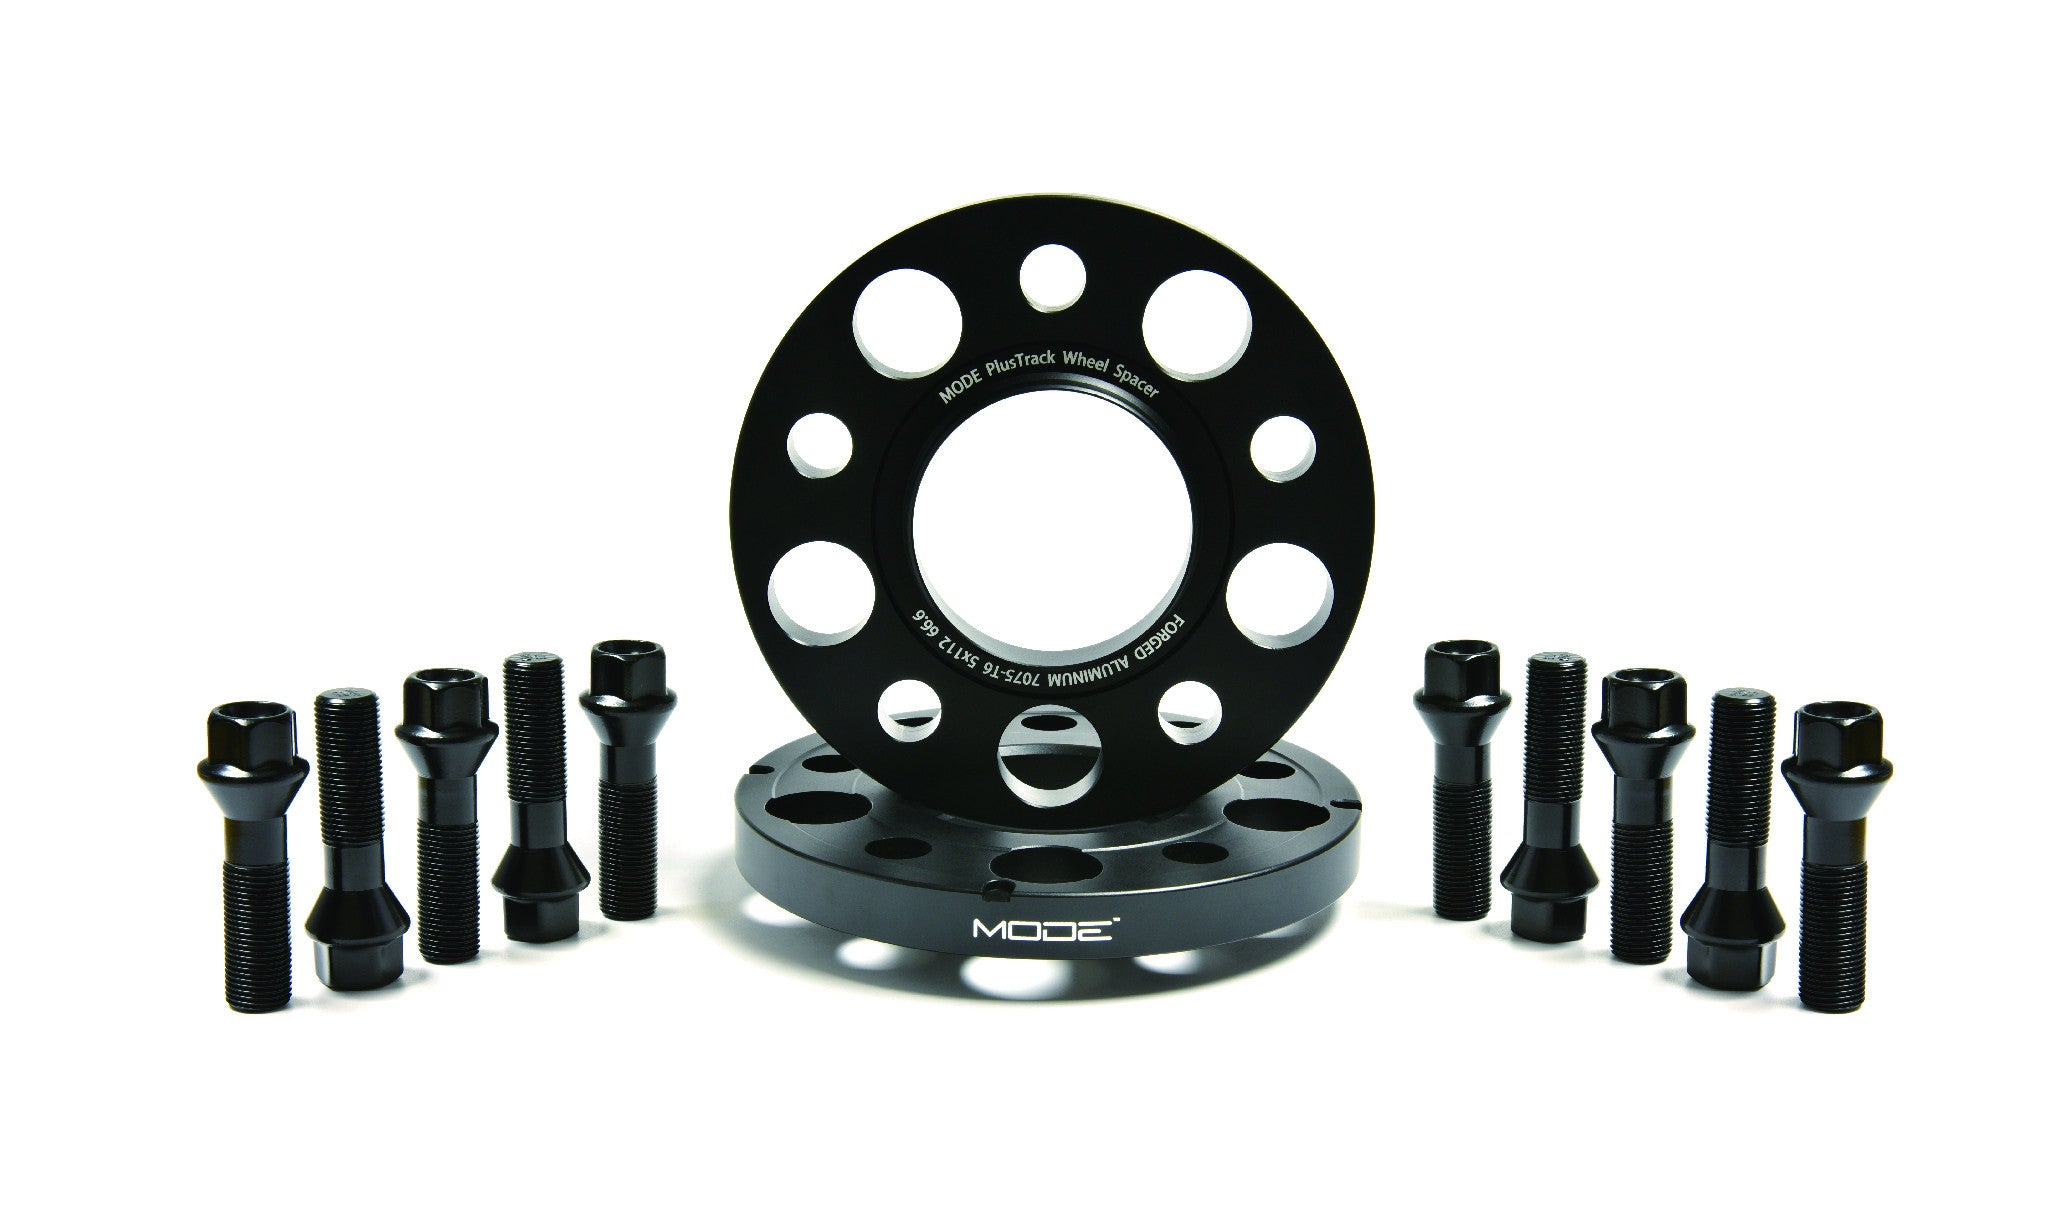 MODE PlusTrack Wheel Spacer Kit 18mm Bentley - MODE Auto Concepts